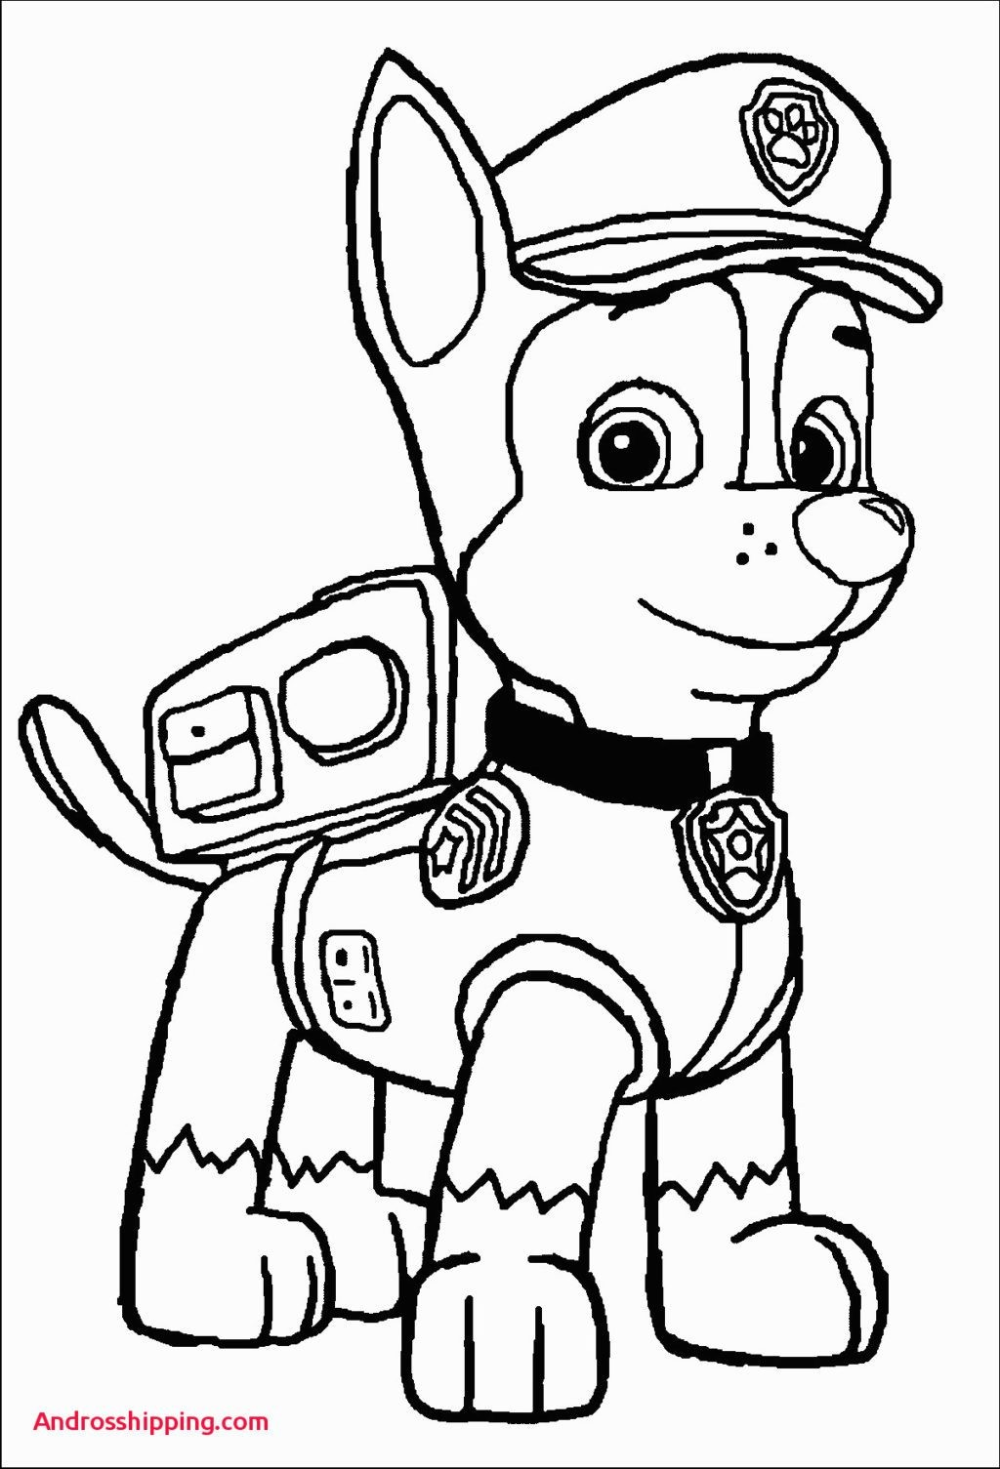 14 Coloring Sheets For Kids Paw Patrol Coloring Paw Patrol Coloring Pages Animal Coloring Pages